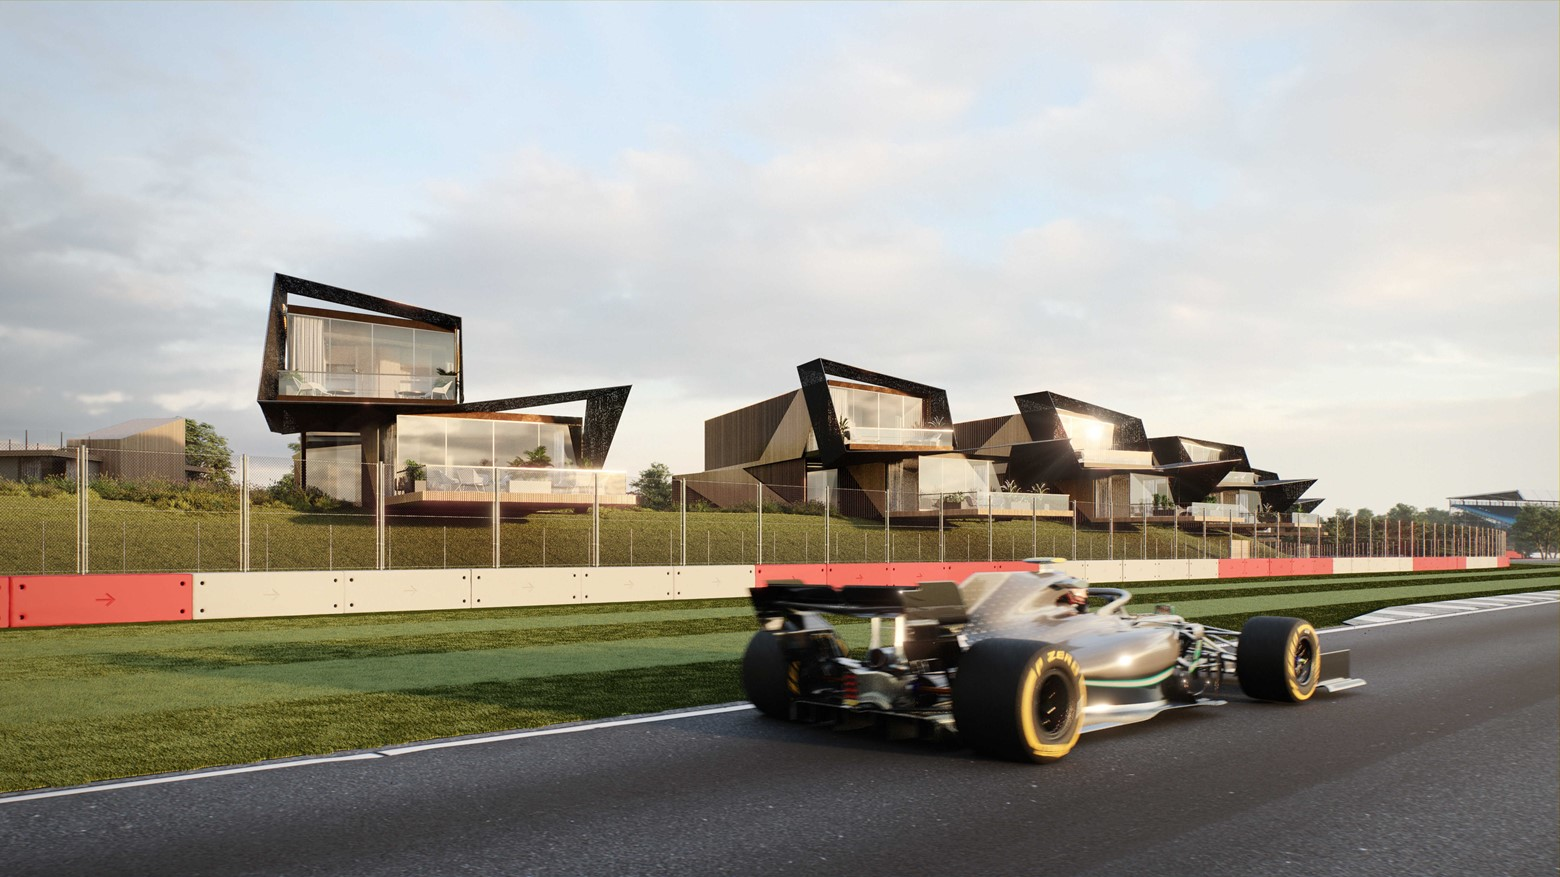 buy-a-home-by-the-silverstone-track-for-the-ultimate-motorsport-experience